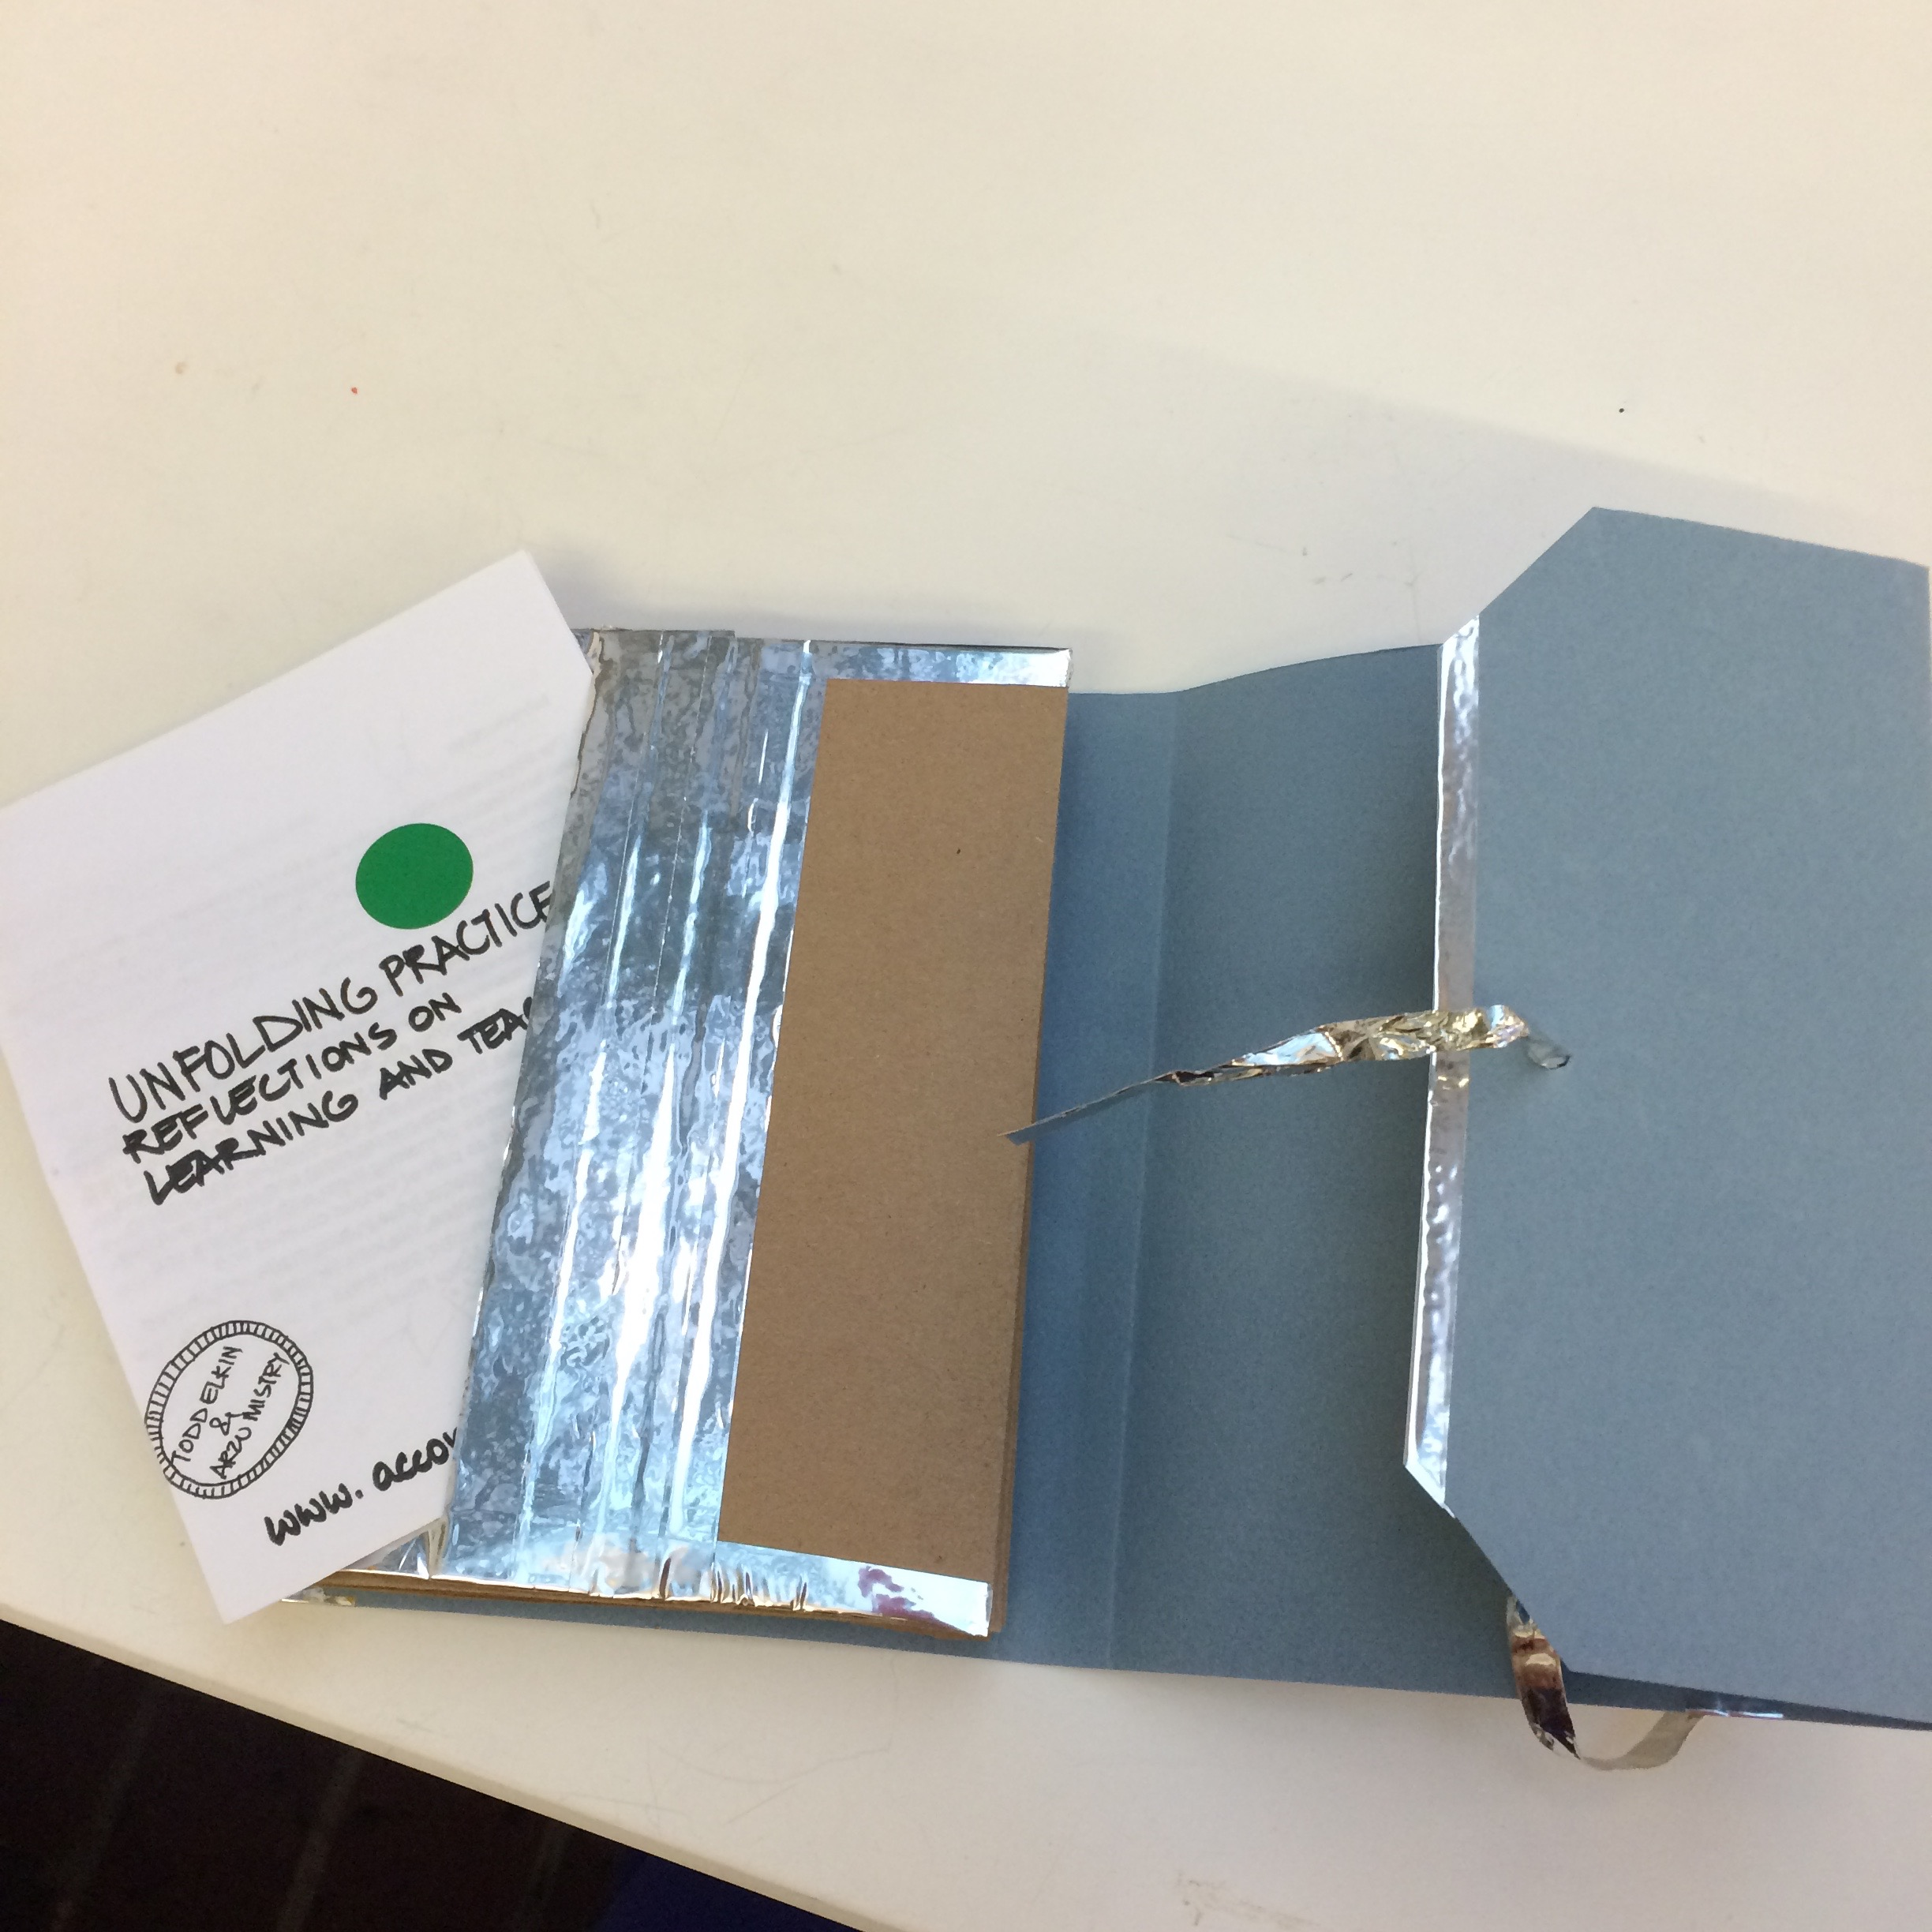 The pocket of my accordion book